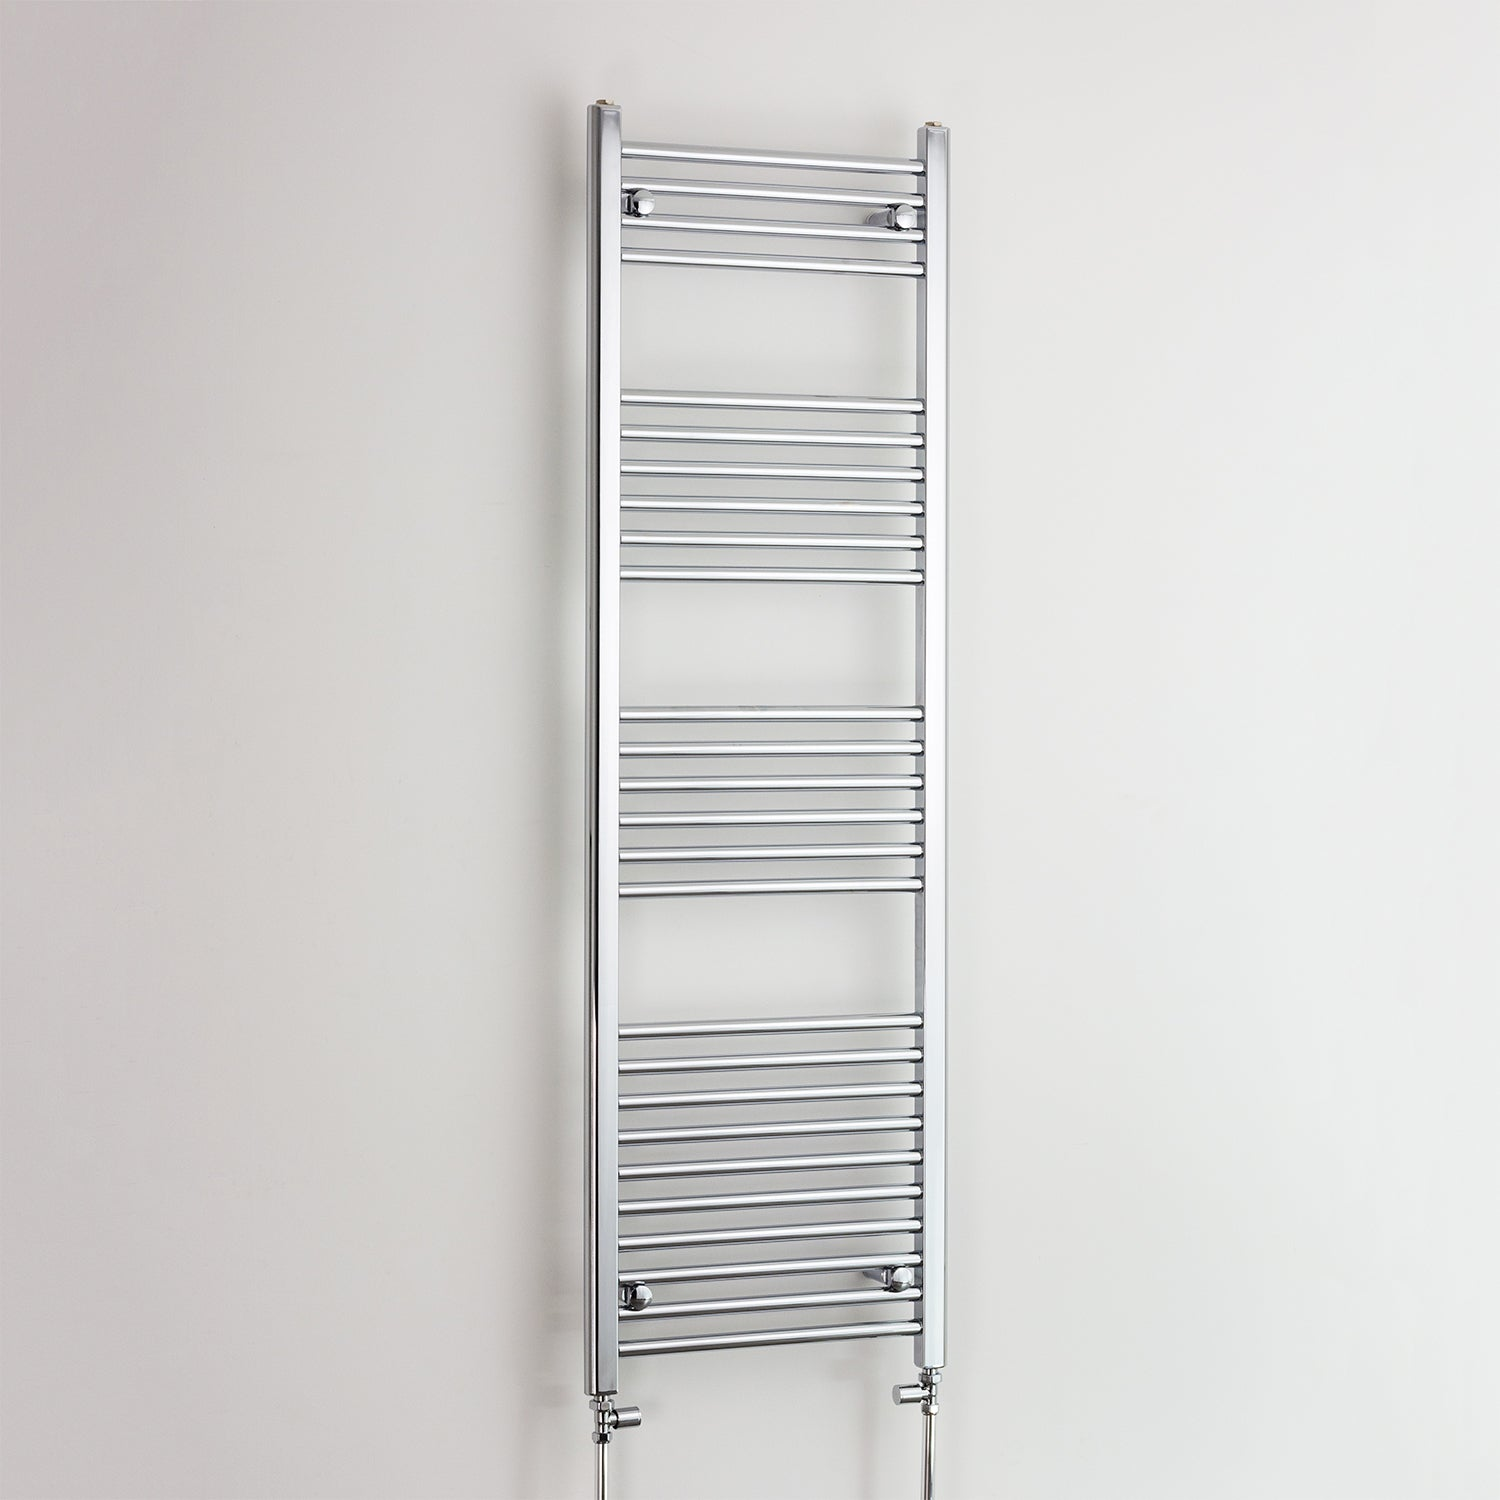 500mm Wide 1600mm High Flat Chrome Heated Towel Rail Radiator HTR,With Straight Valve